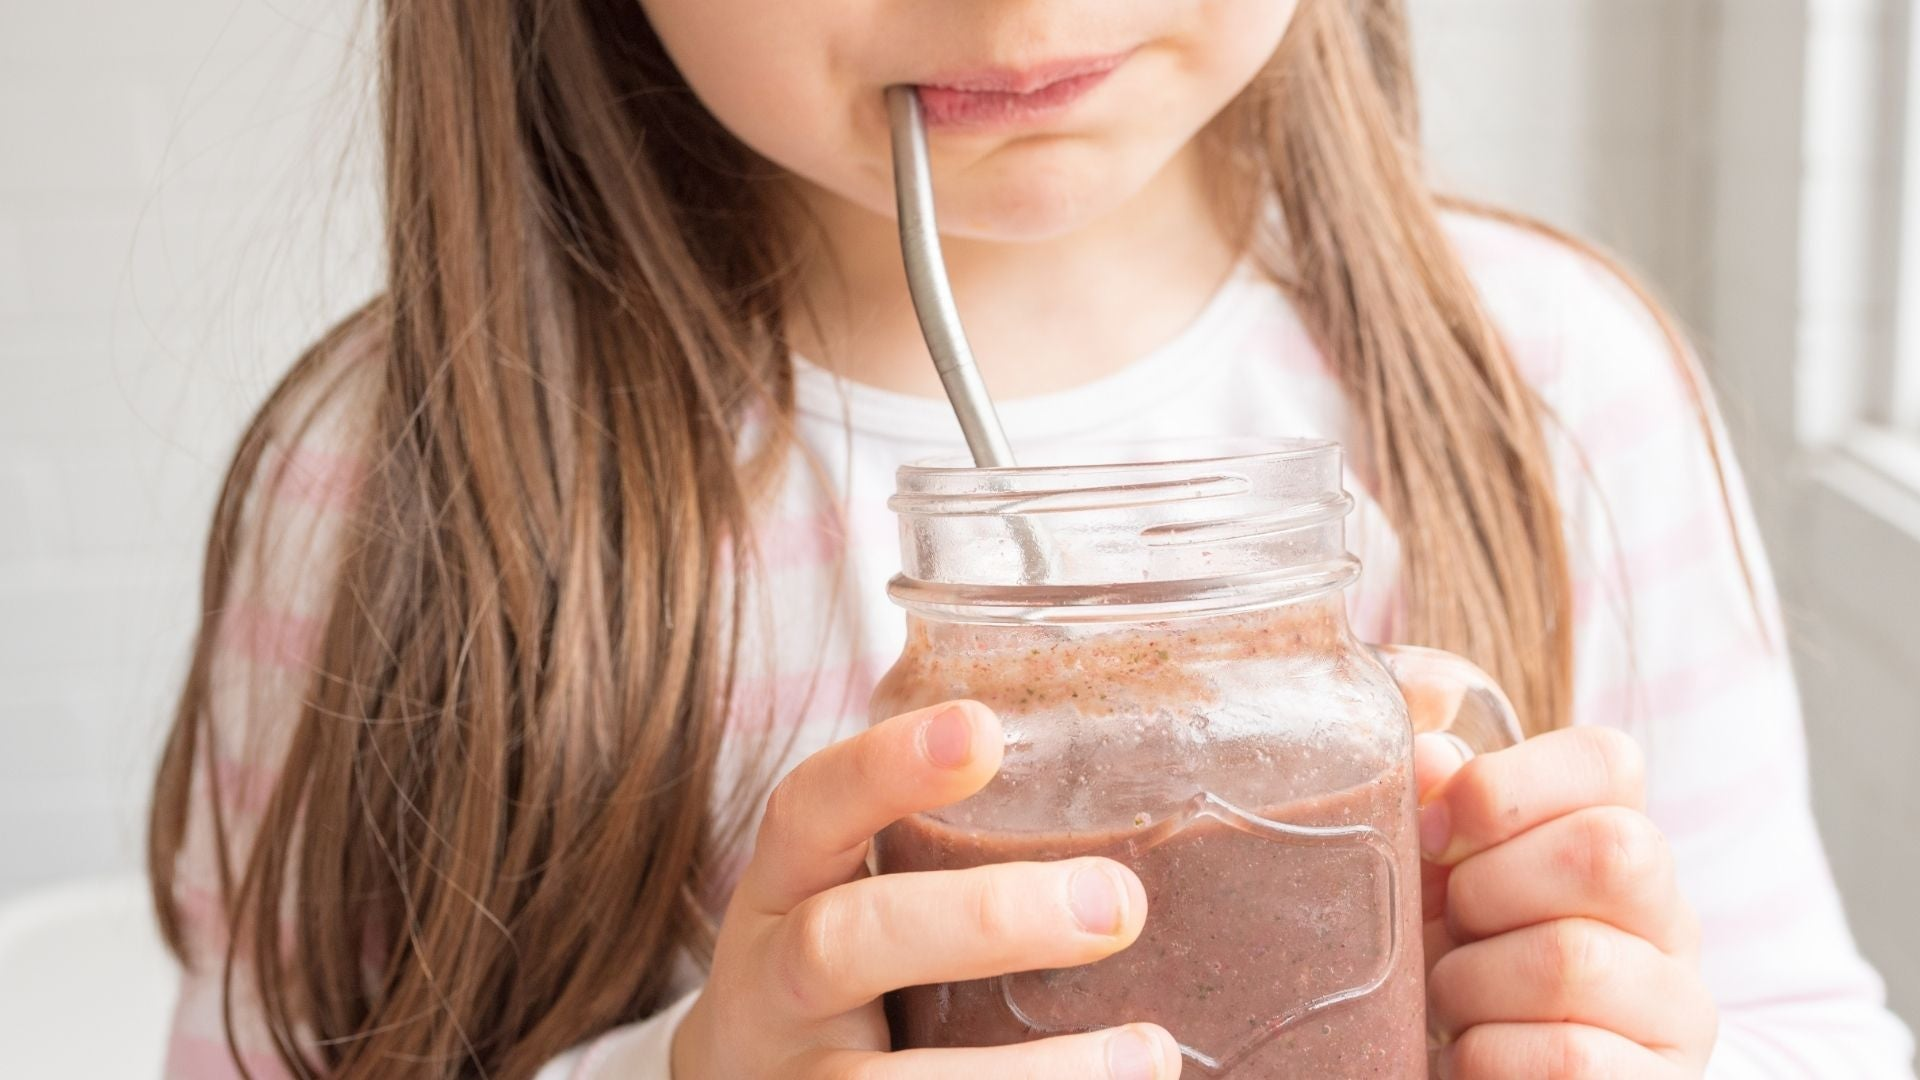 Are metal straws clean?